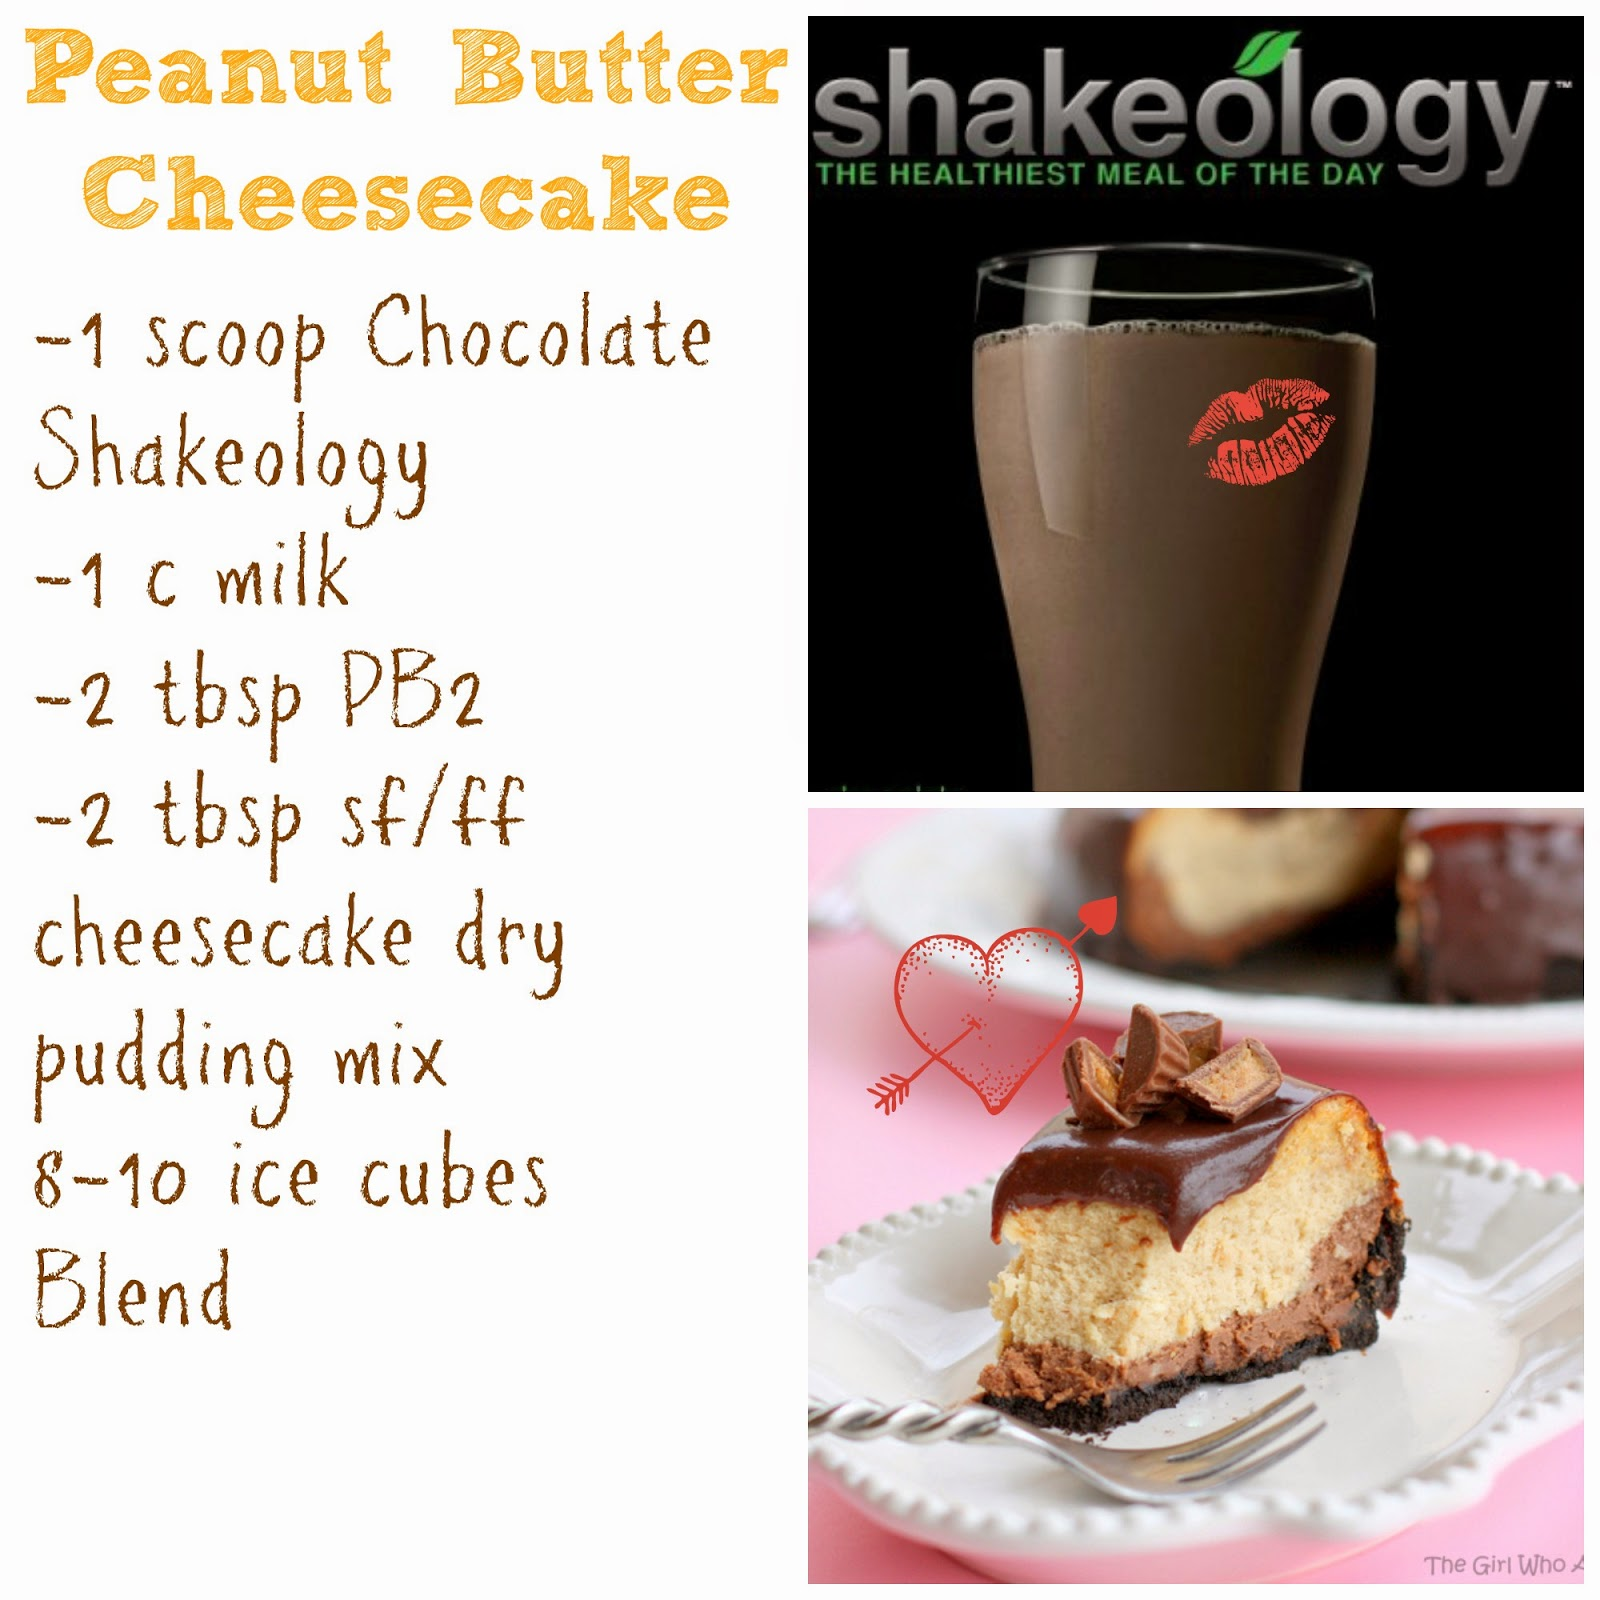 peanut butter, cheesecake, shakeology, recipe, weight loss, weight watchers, beachbody, Erin Traill